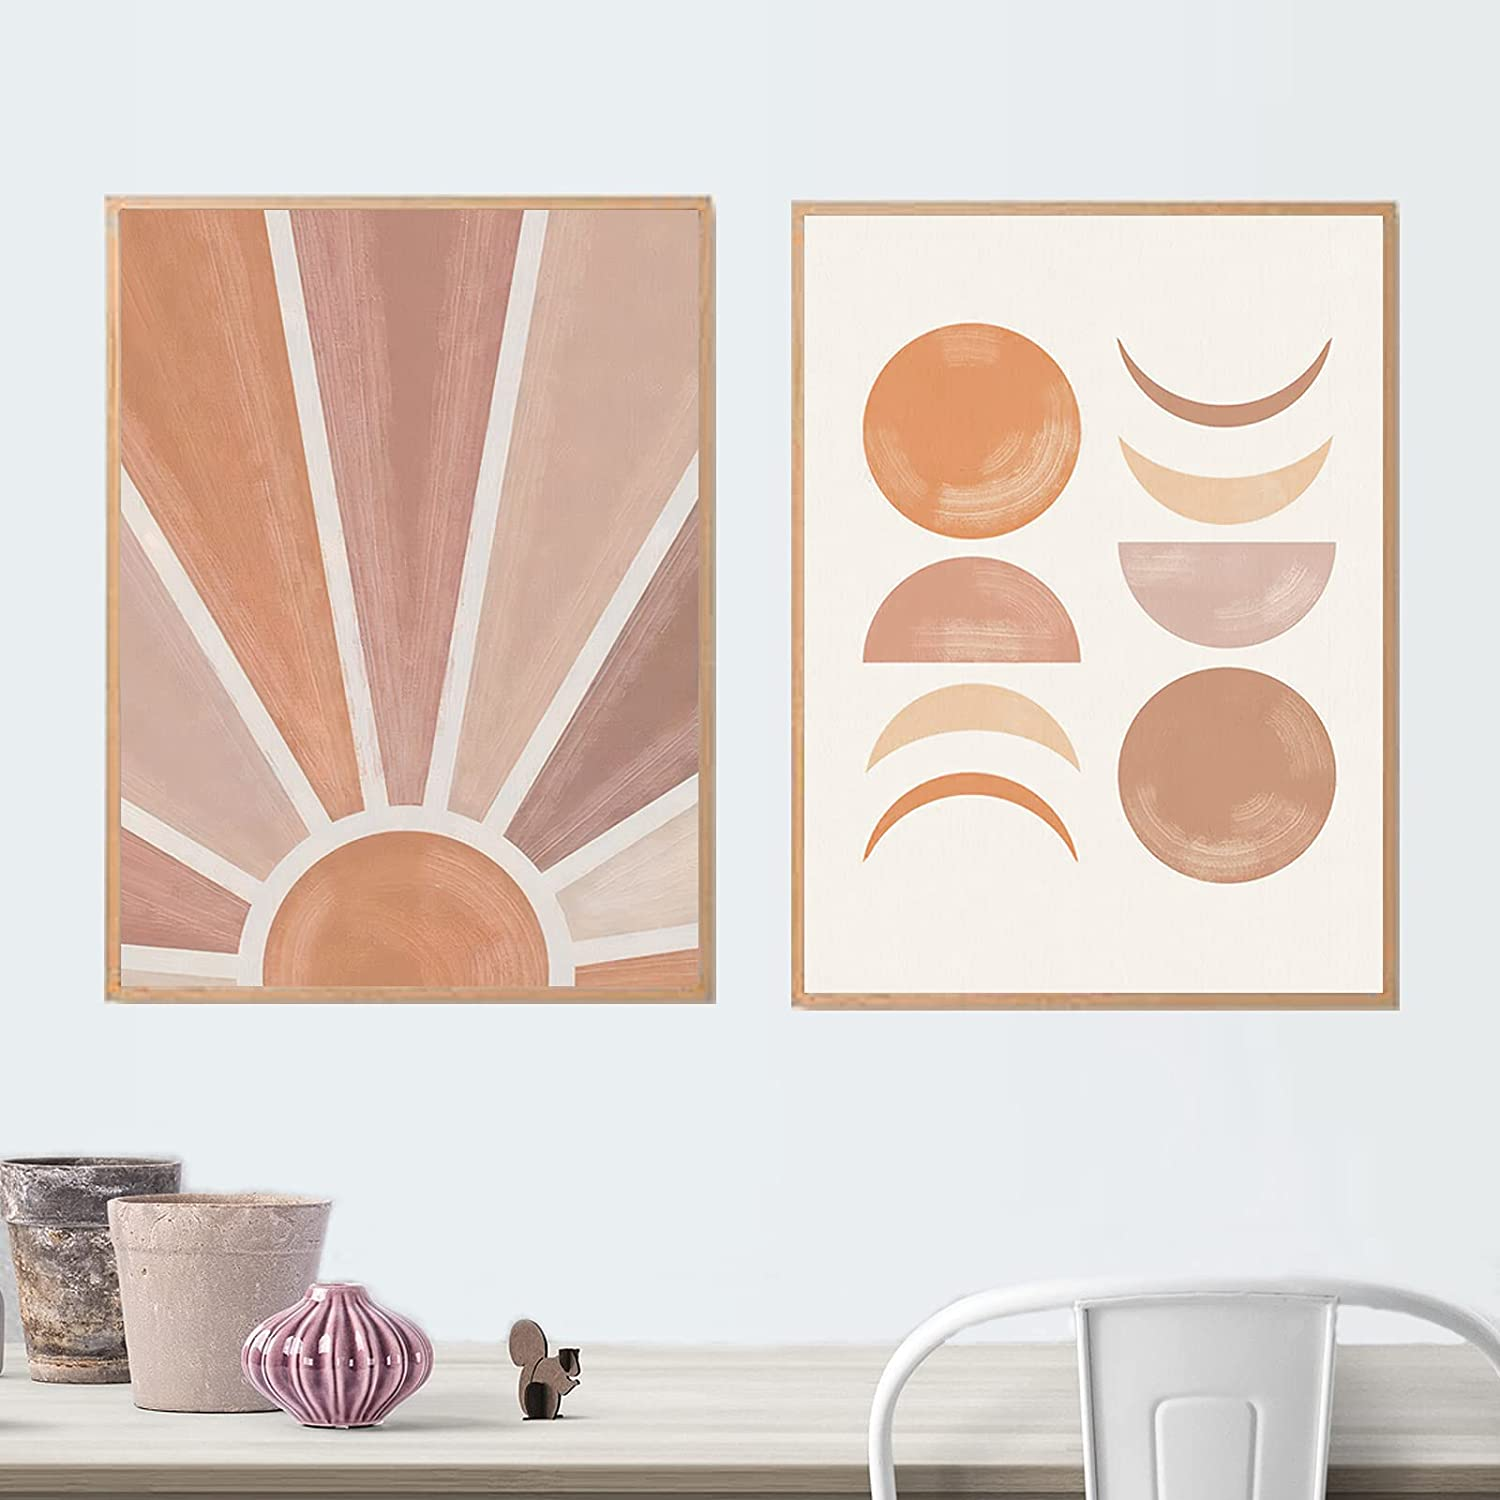 Laoife Minimalist Wall Art Mid Century Modern Sun Canvas Art Print Poster  for Living Room Pictures,Set of 20 Boho Abstract Nature Wall Decor Rolled up  ...